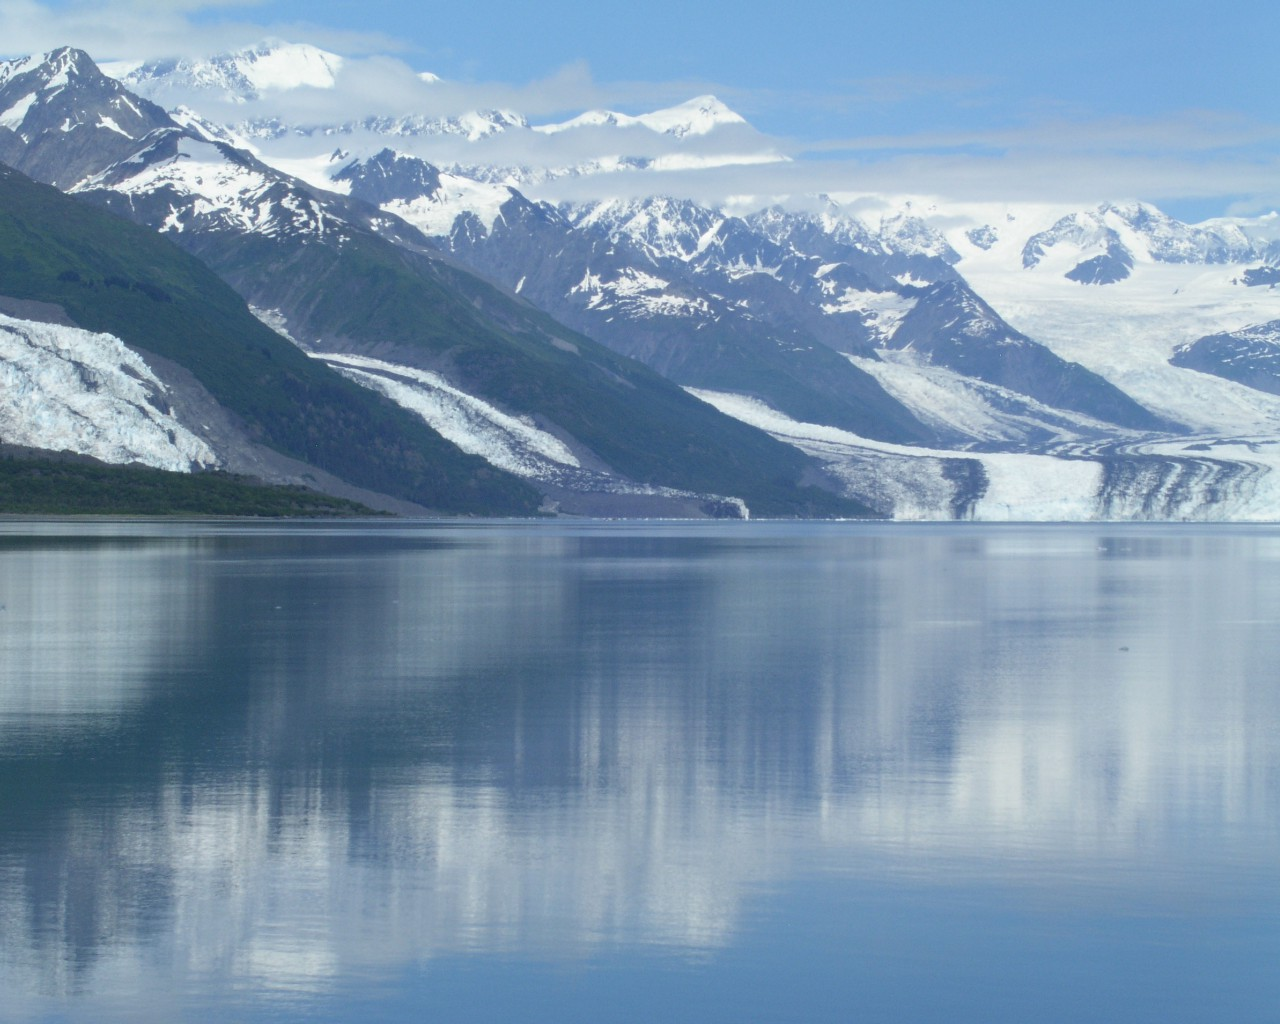 Famous places in alaska bing images - Srilankan airlines bangalore office number ...